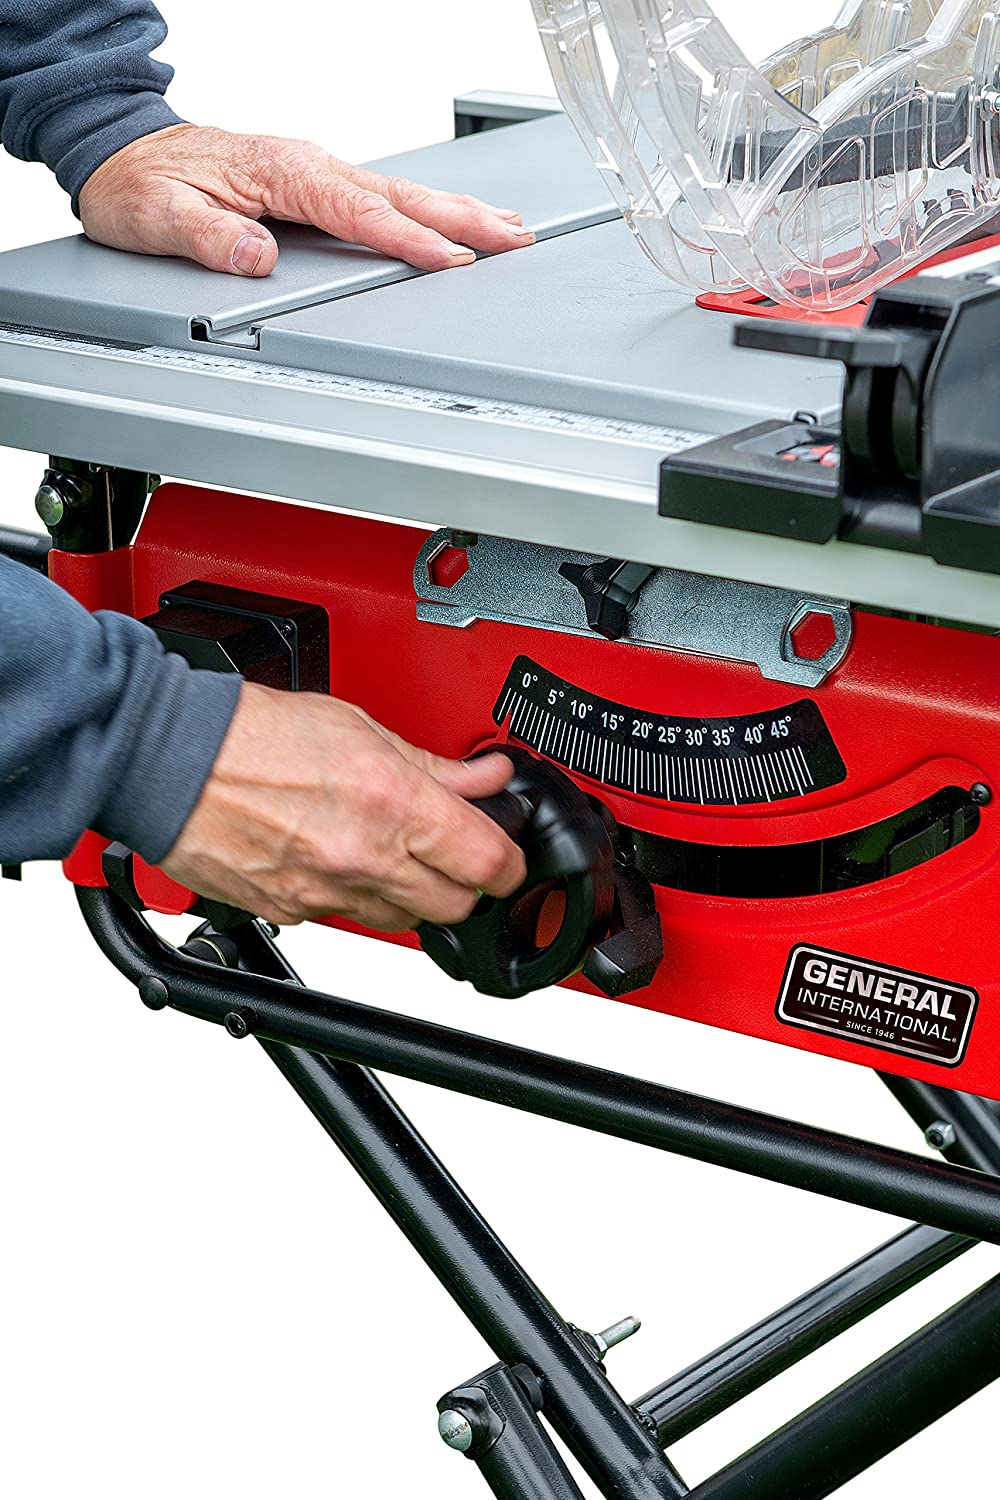 General International TS4004 Table Saws product image 8